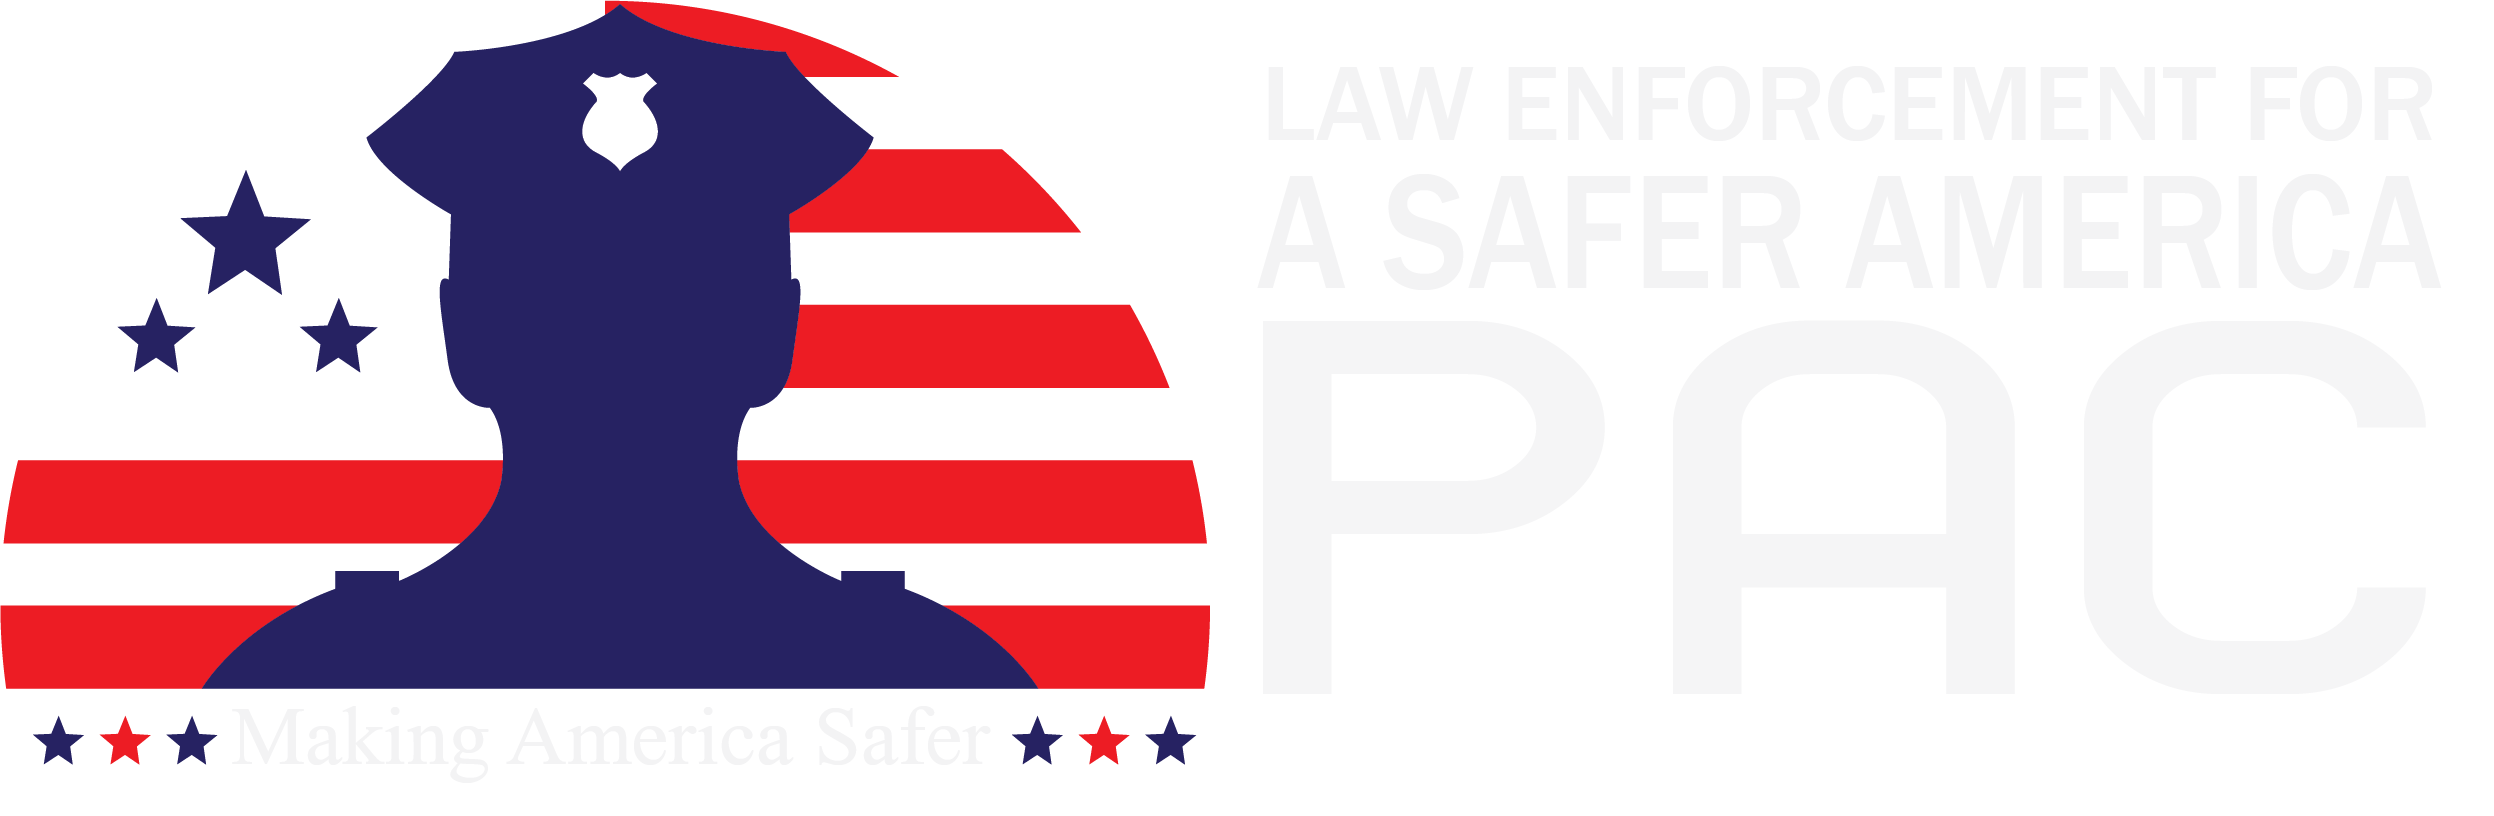 Law Enforcement for a Safer America